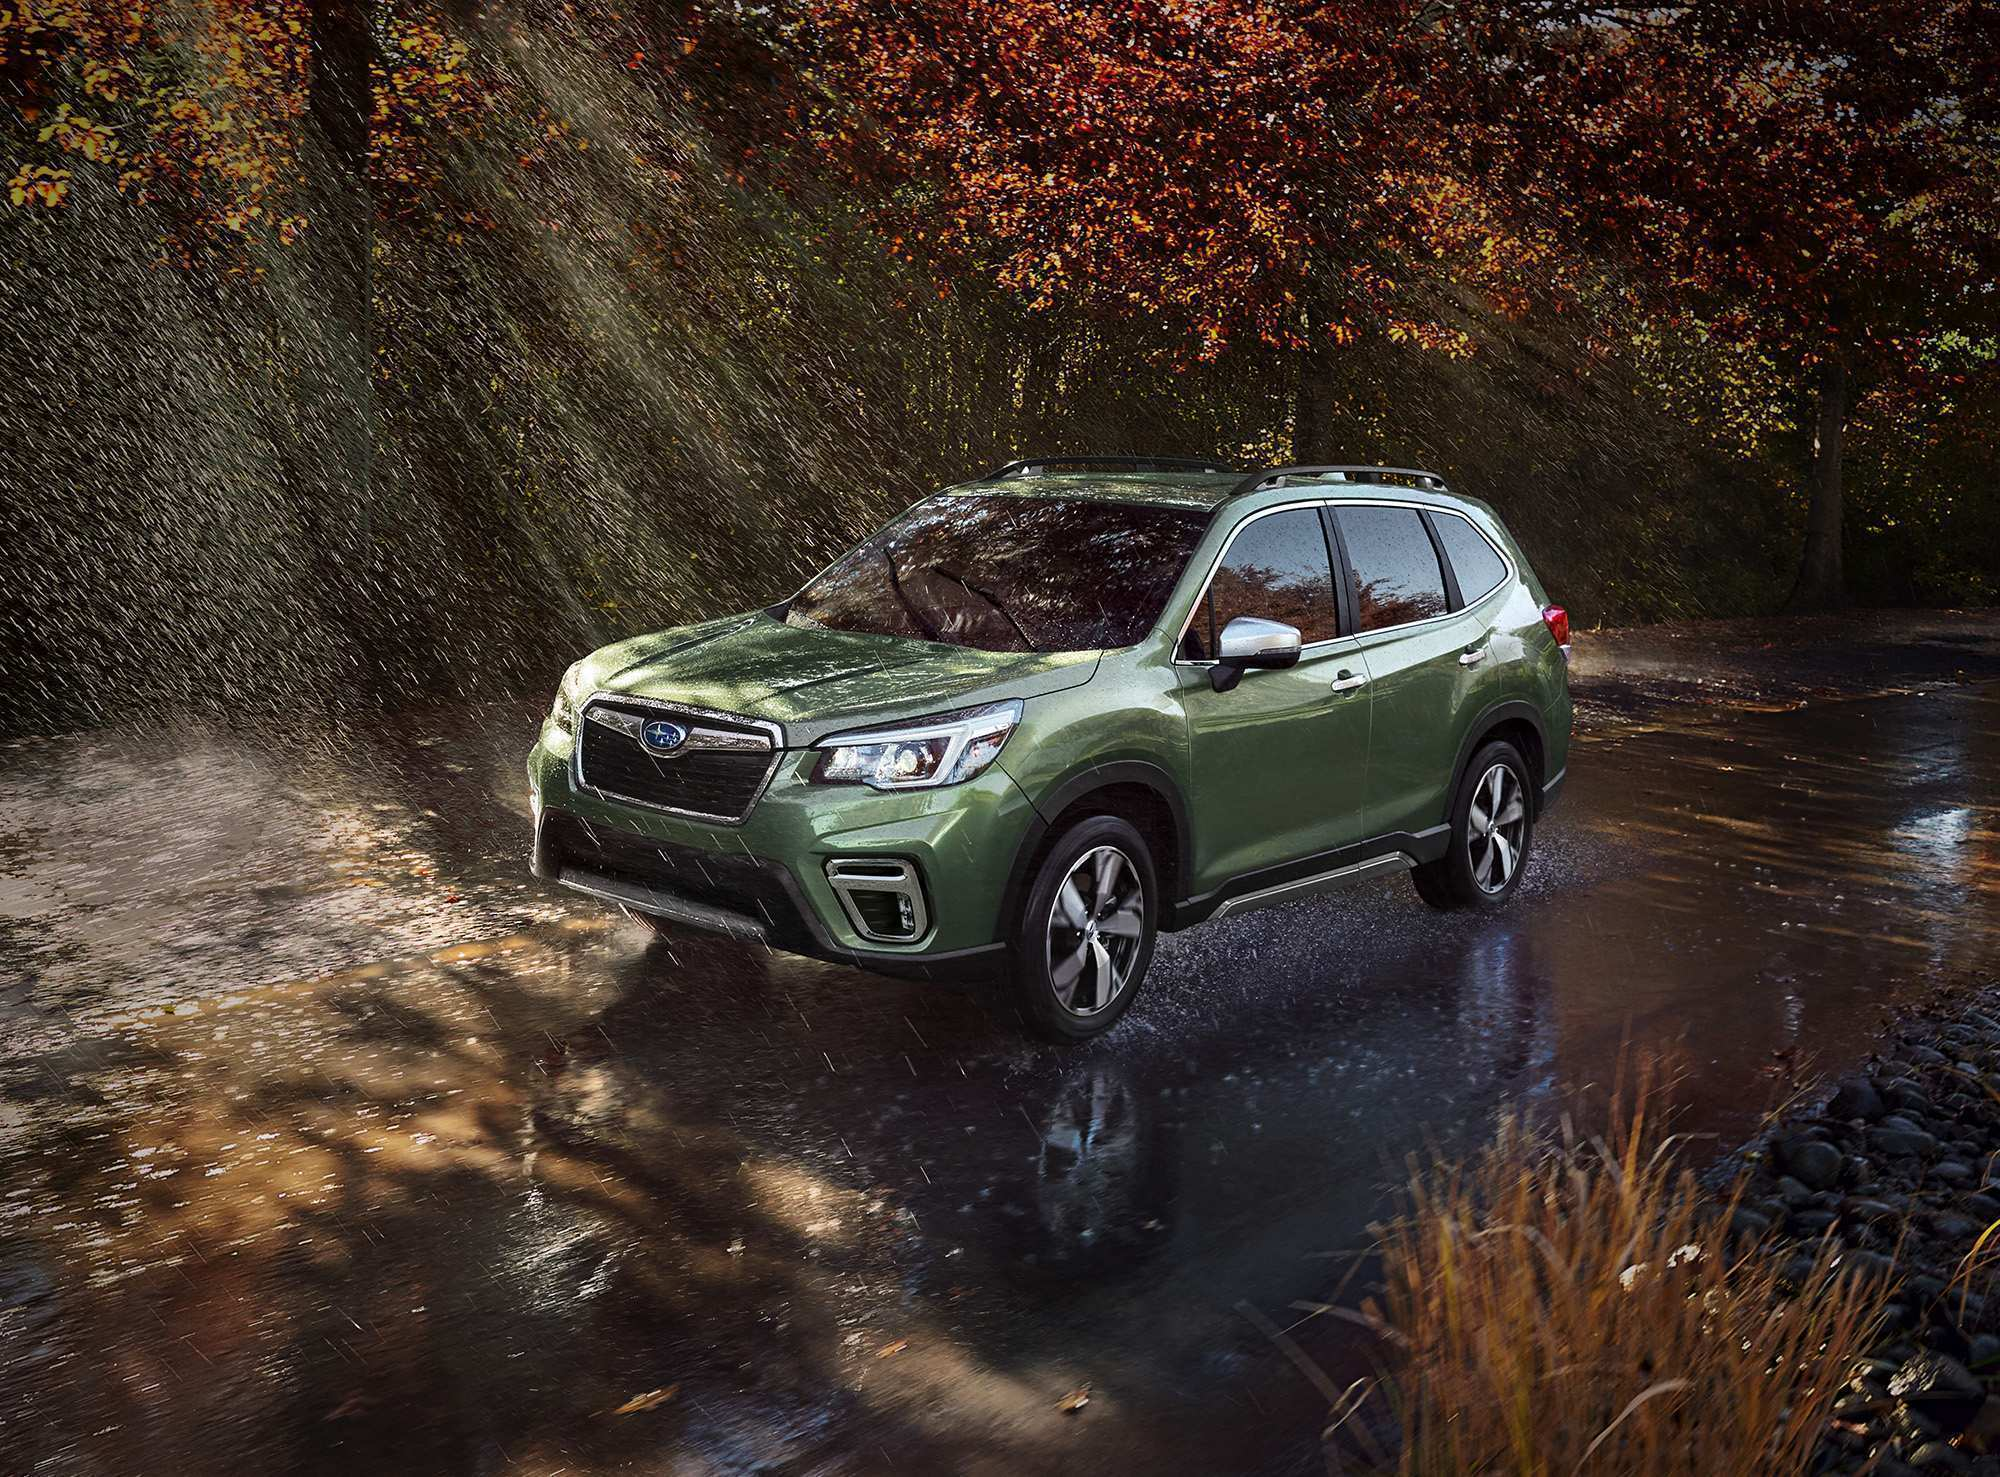 47 New Subaru Forester 2019 Ground Clearance Concept